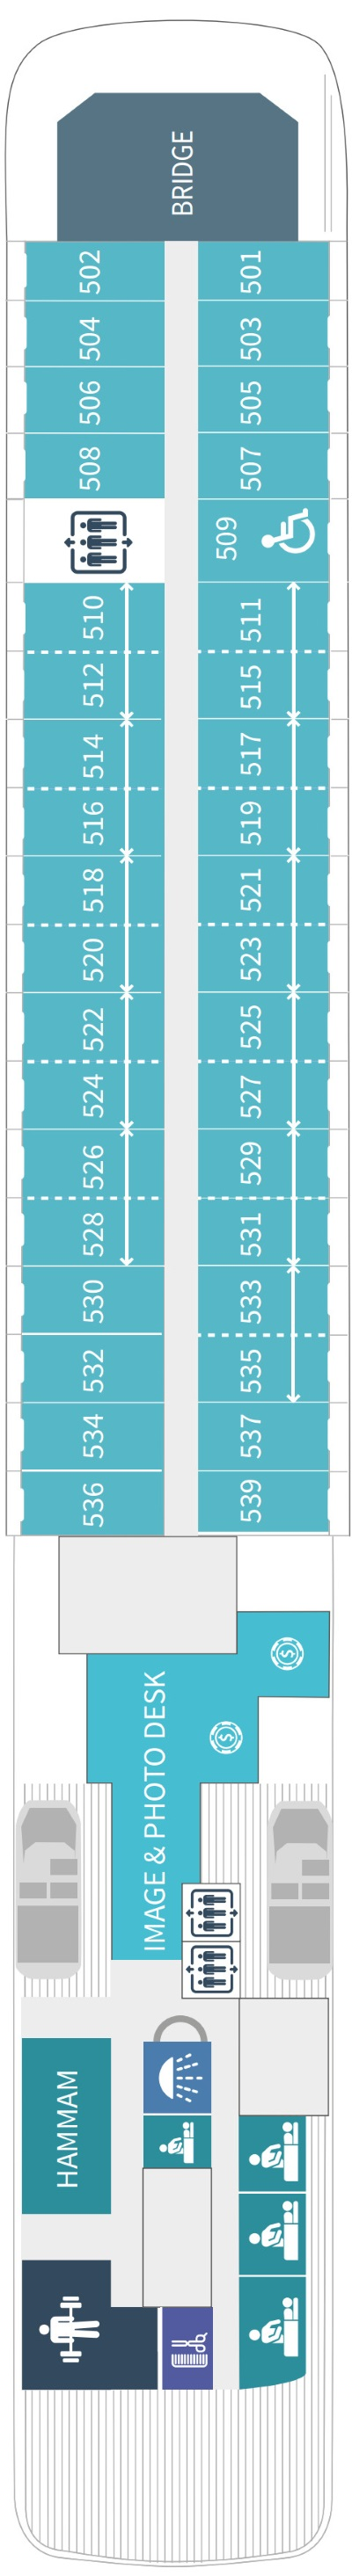 Le Soleal Deck 5 layout